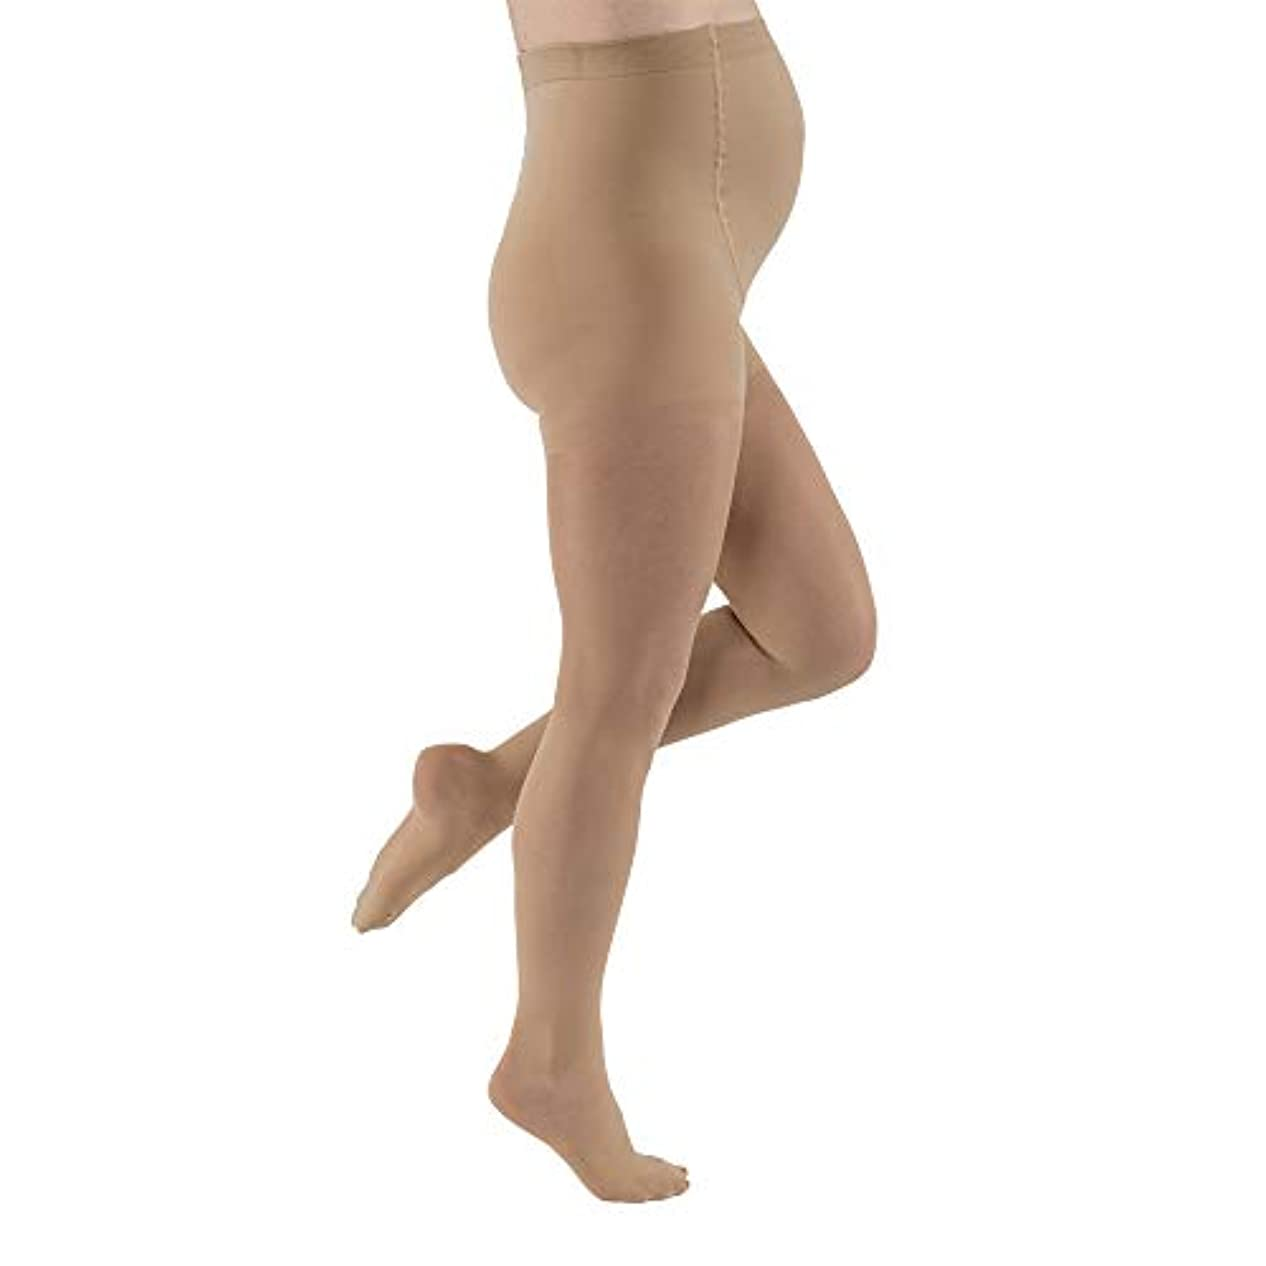 祭り魔女没頭するJobst Ultrasheer Women's Maternity CT 20-30mmHg Pantyhose - Medium, Natural by Jobst